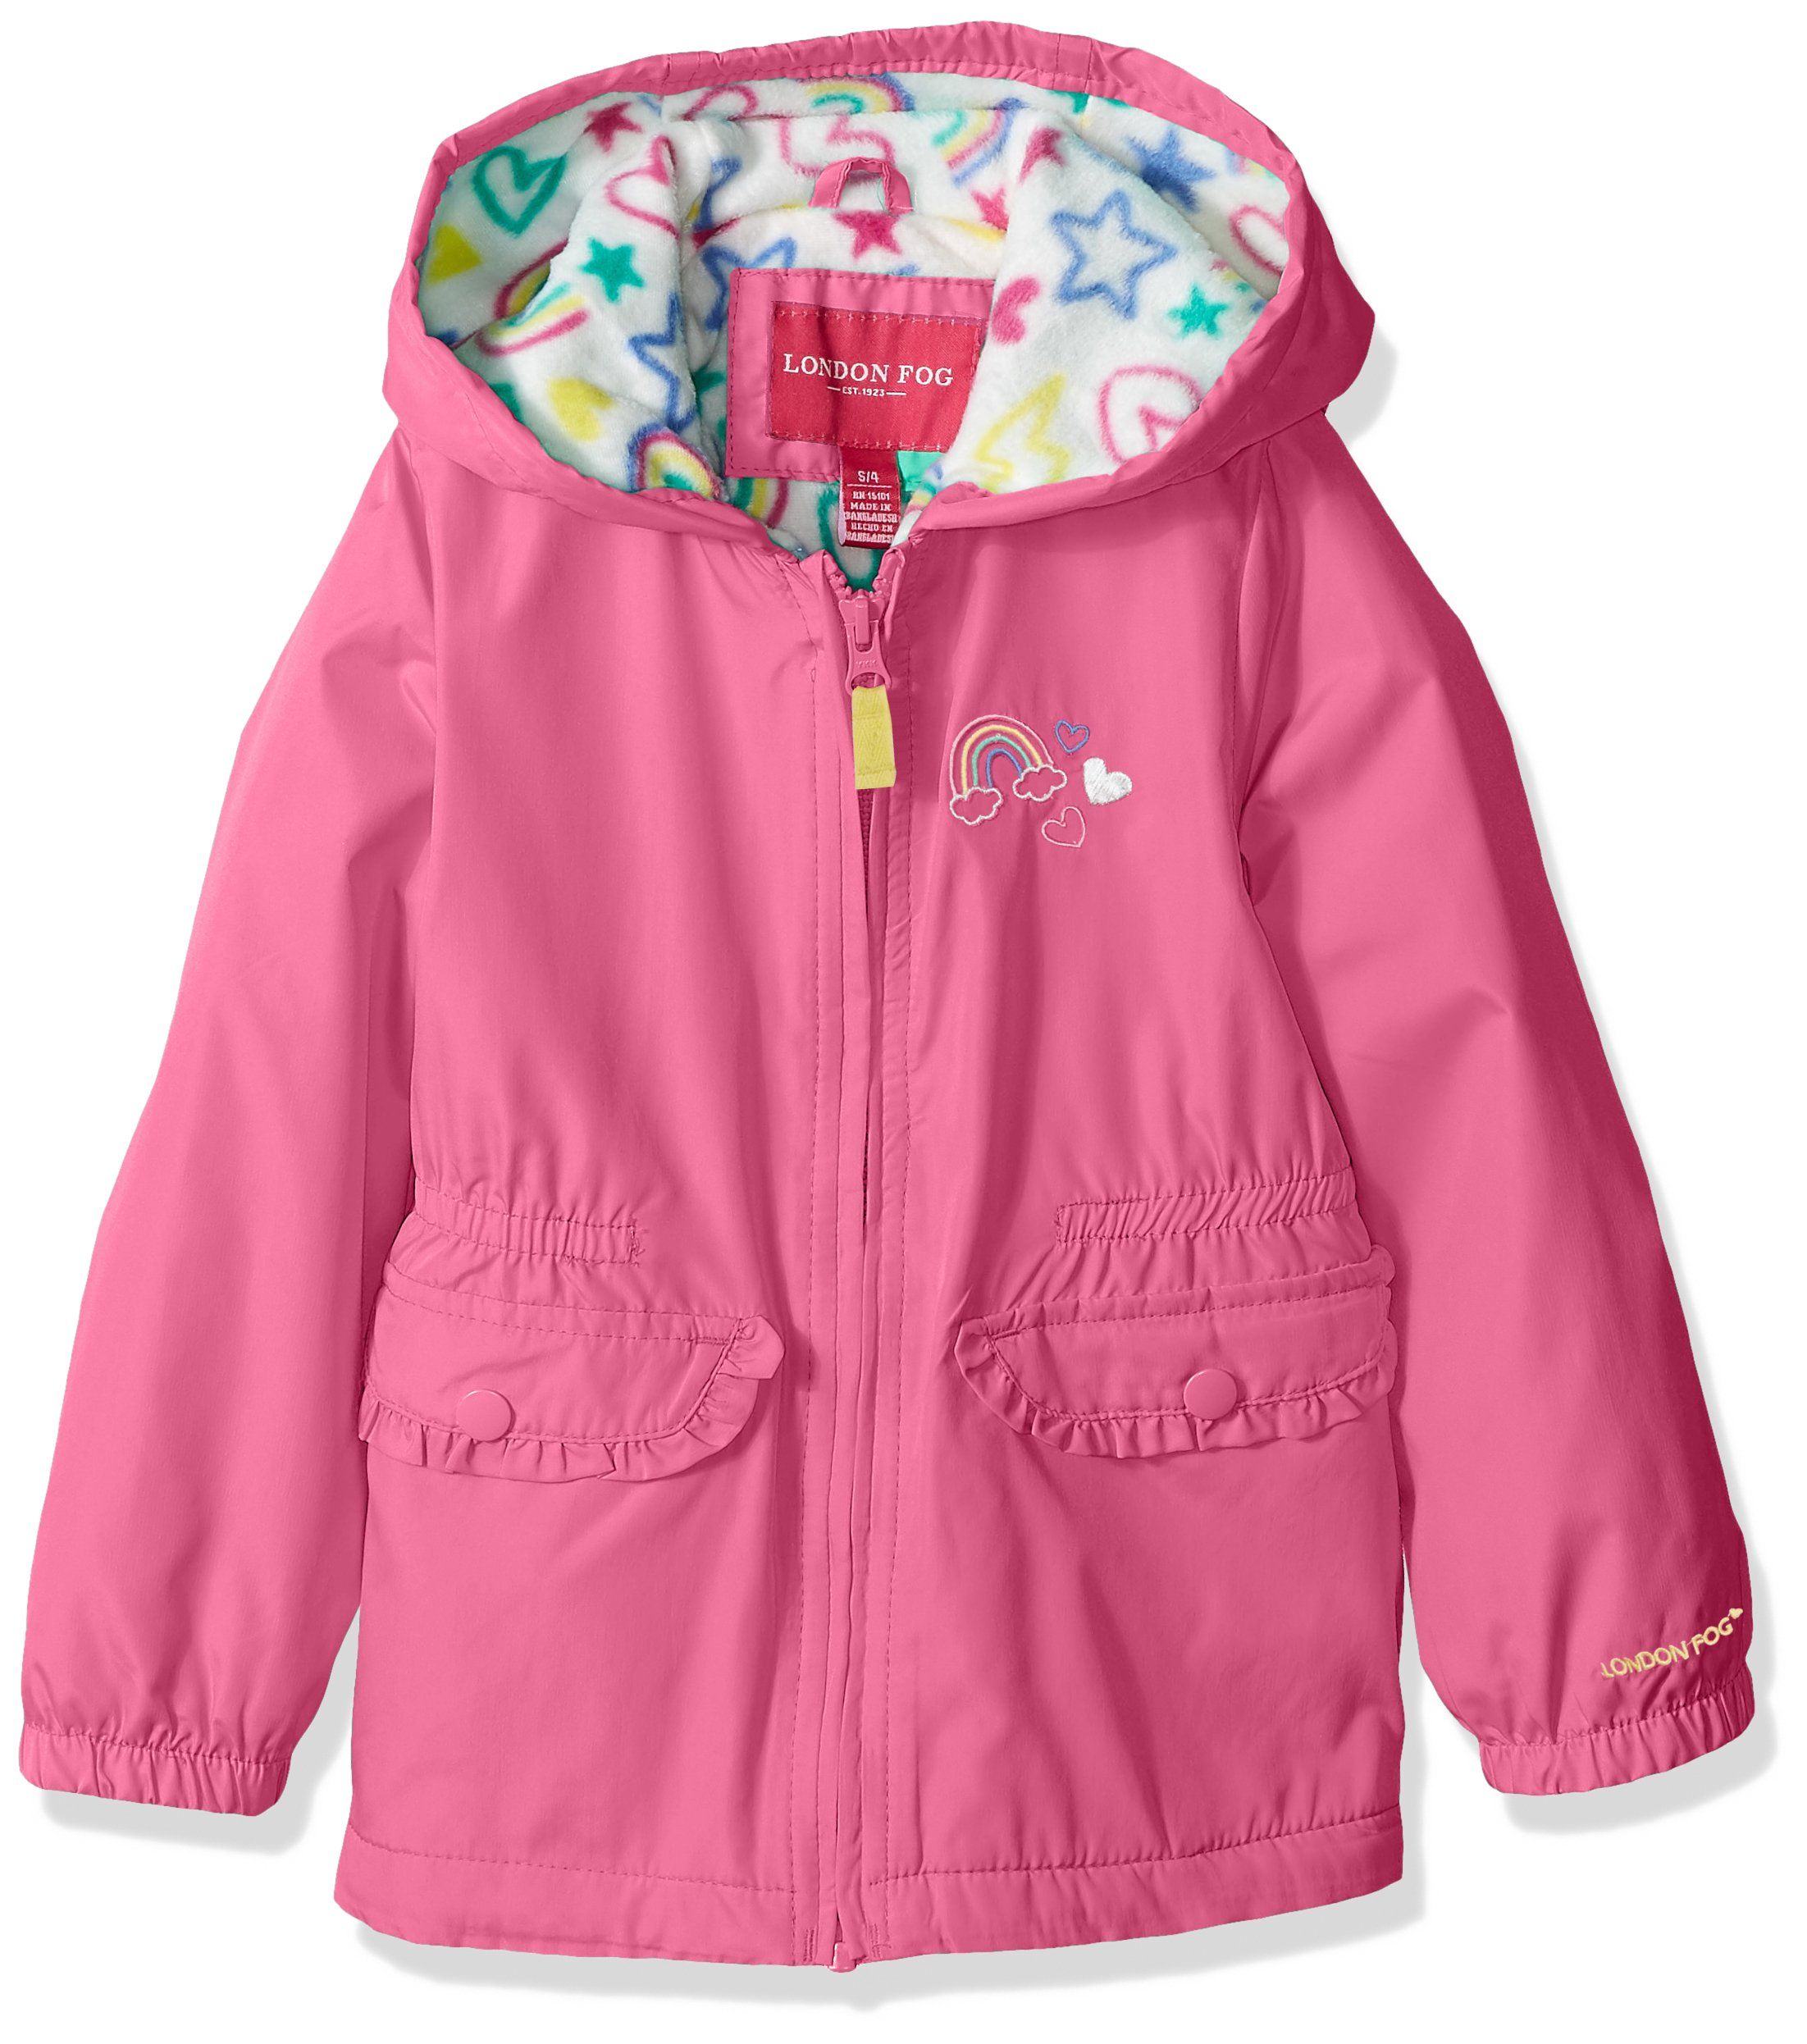 London Fog Little Girls' Fleece Lined Midweight Jacket with Rouched Waist, Phlox Pink, 6X by London Fog